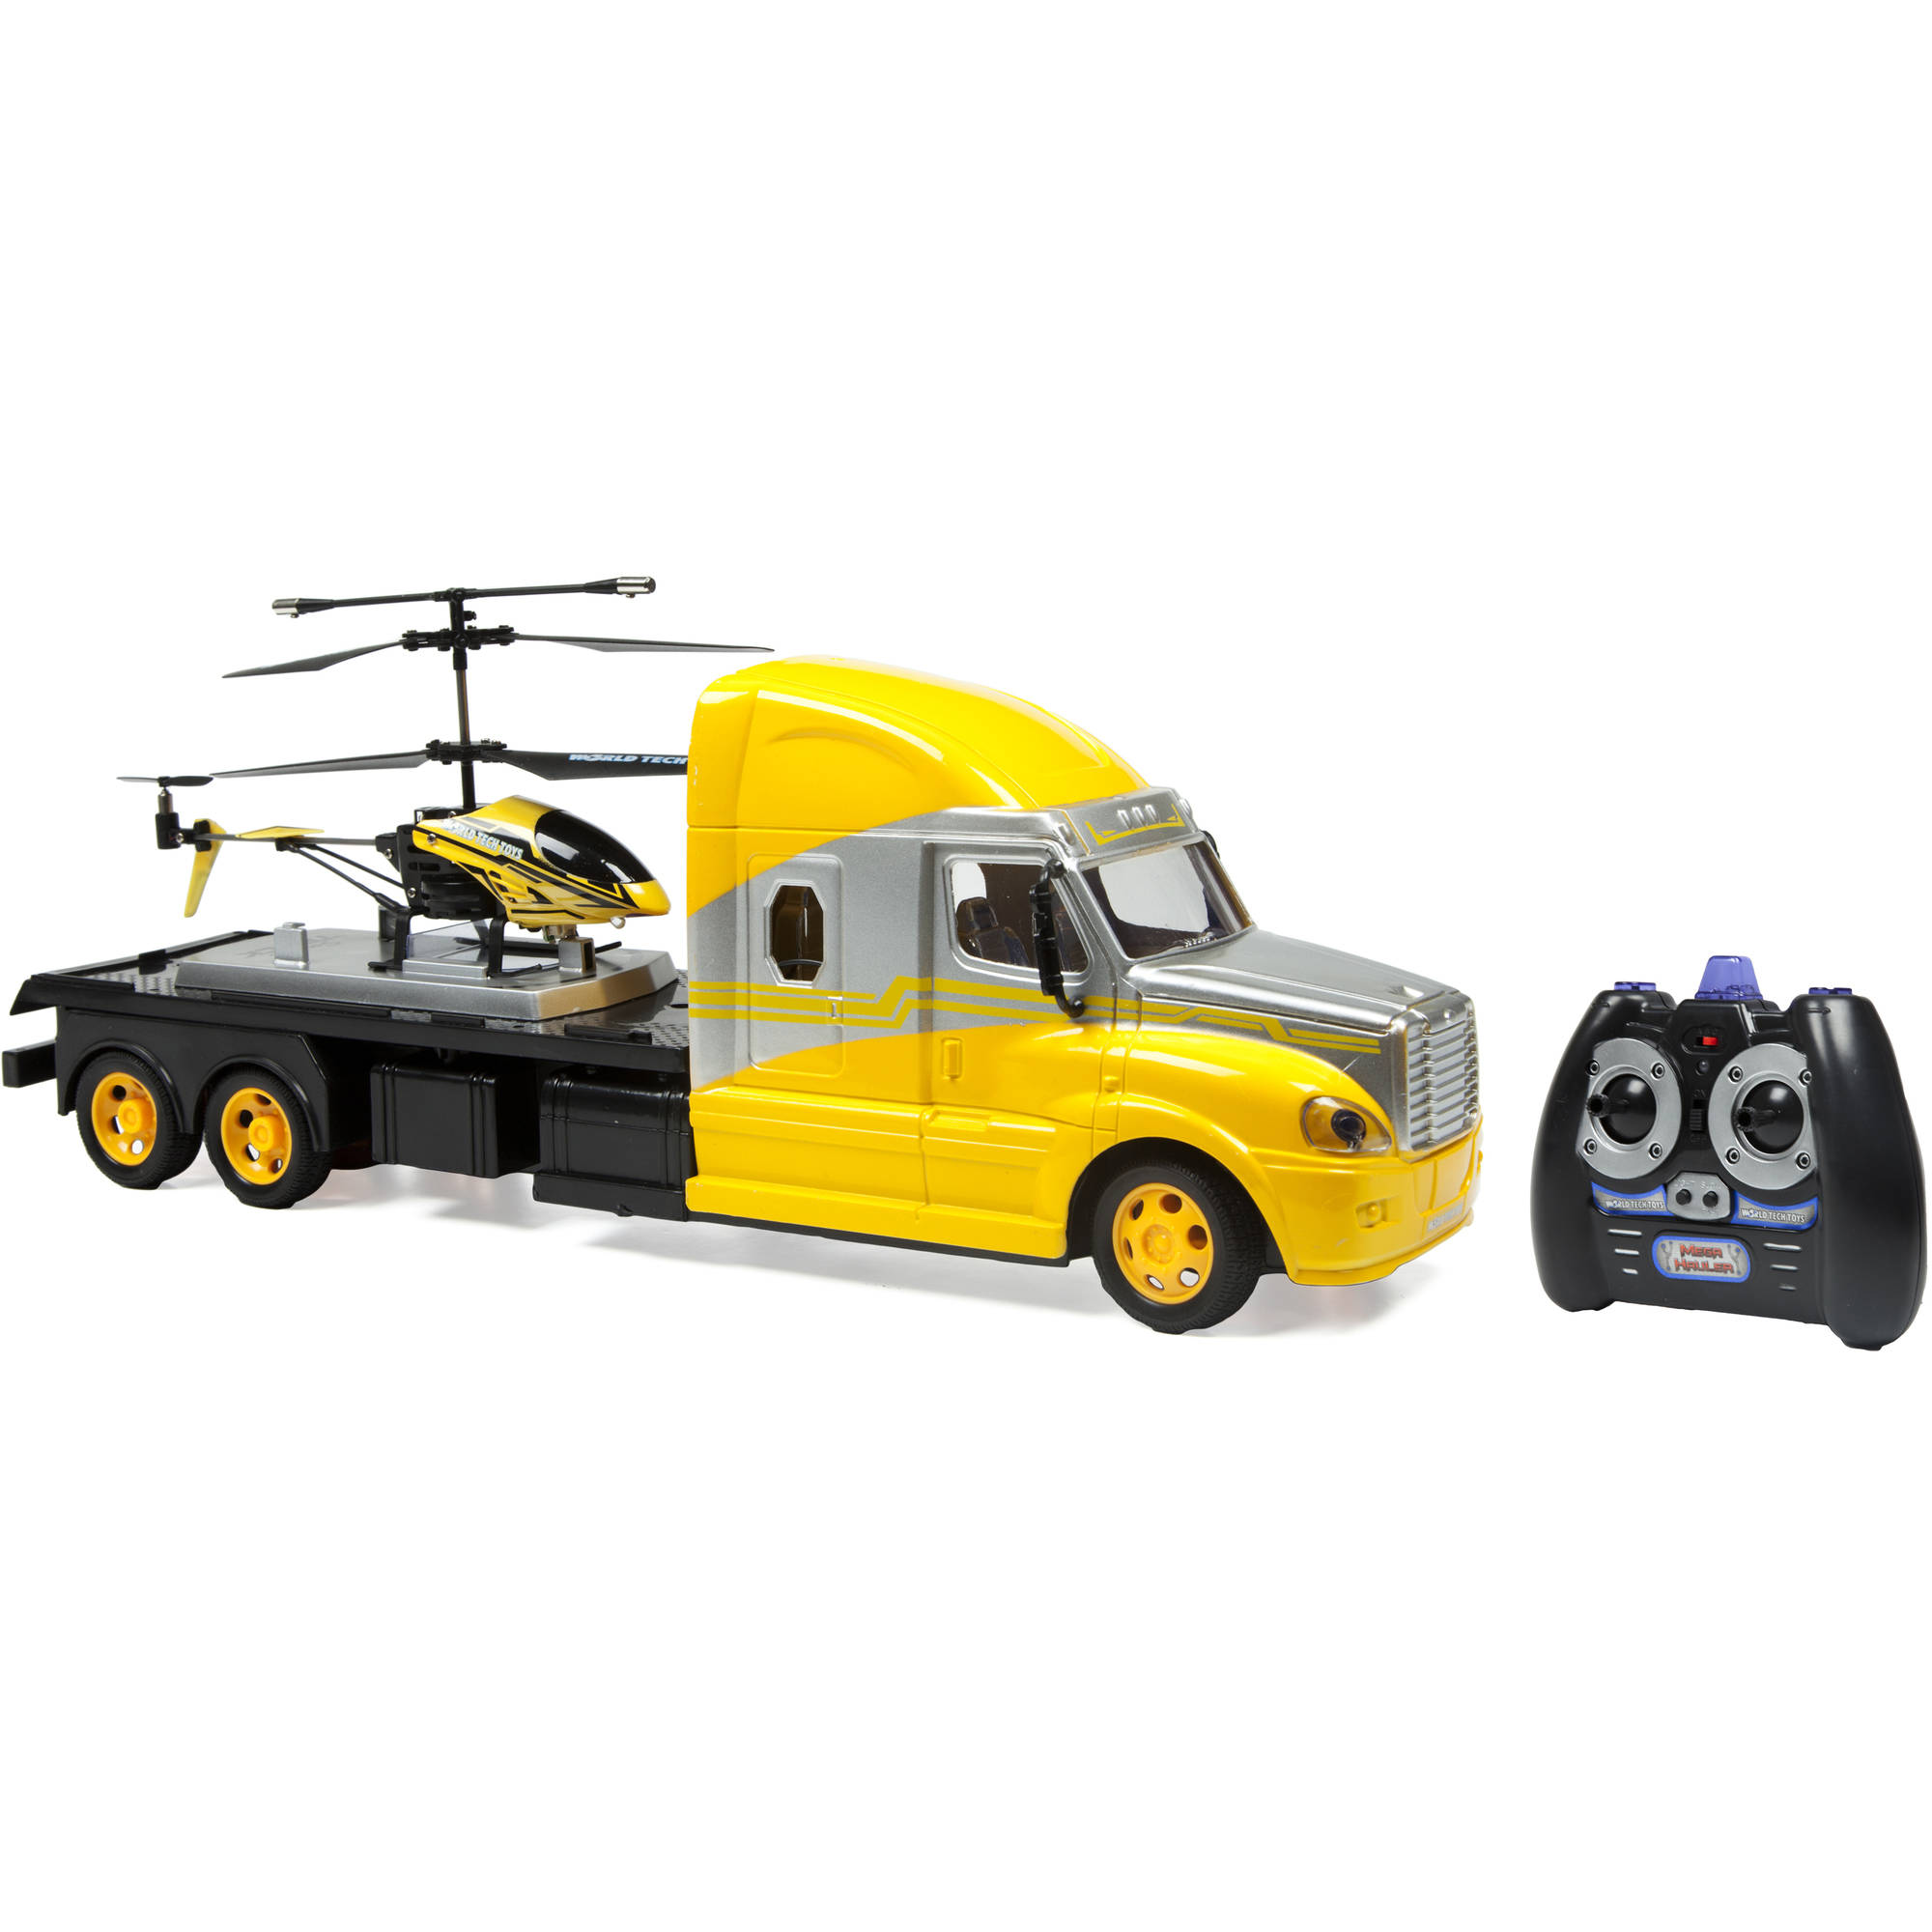 MegaHauler 3.5CH Helicopter and Electric RC Truck IR Combo Pack by World Tech Toys